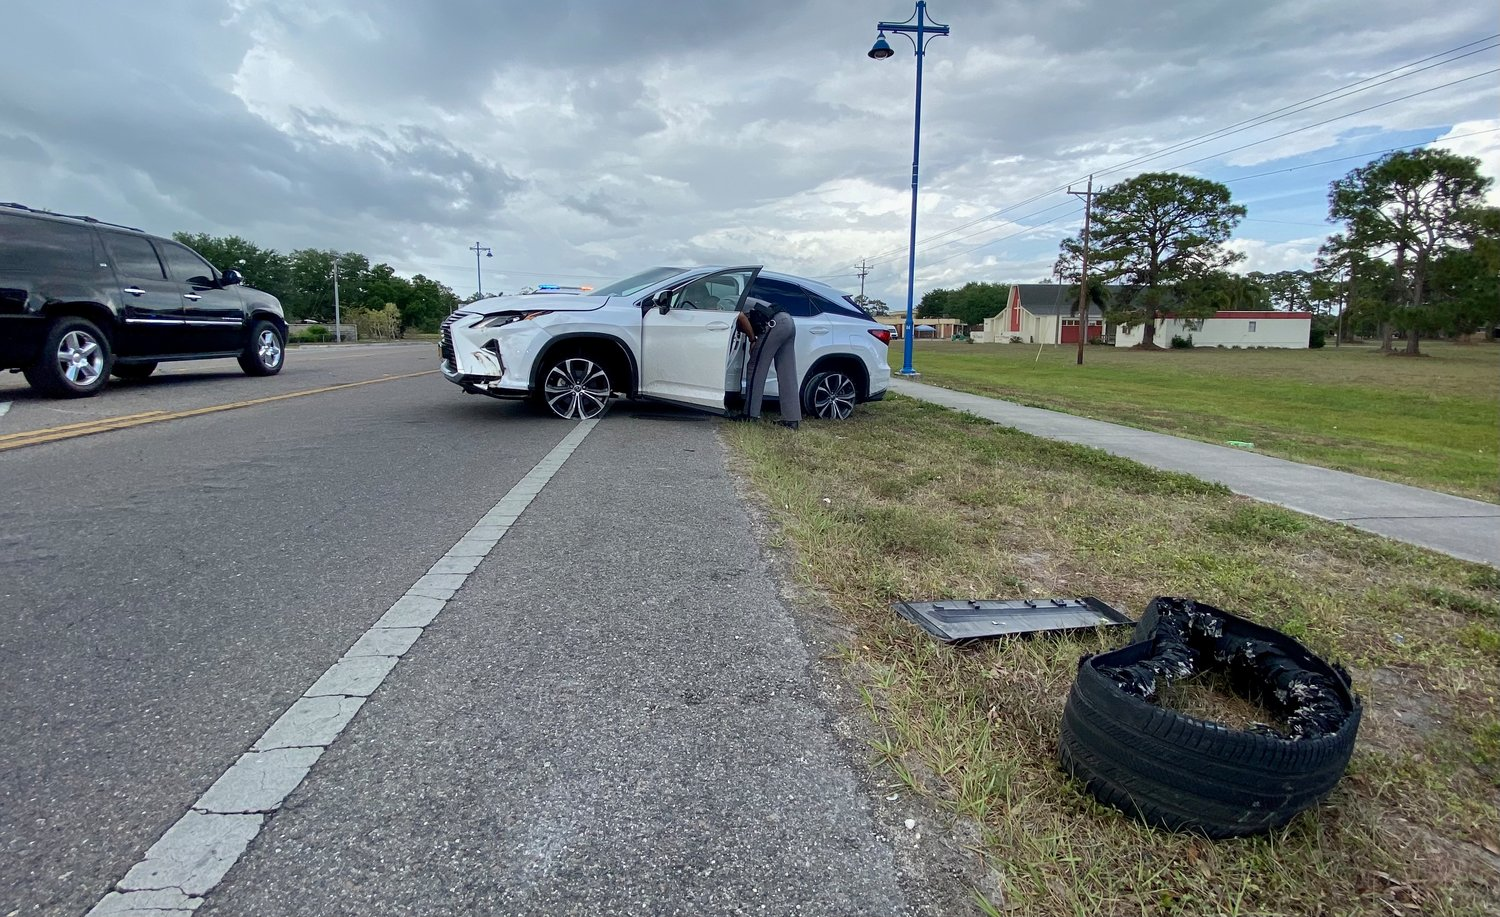 Deputies recovered a stolen white Lexus SUV following a pursuit in Immokalee on Wednesday, March 31.